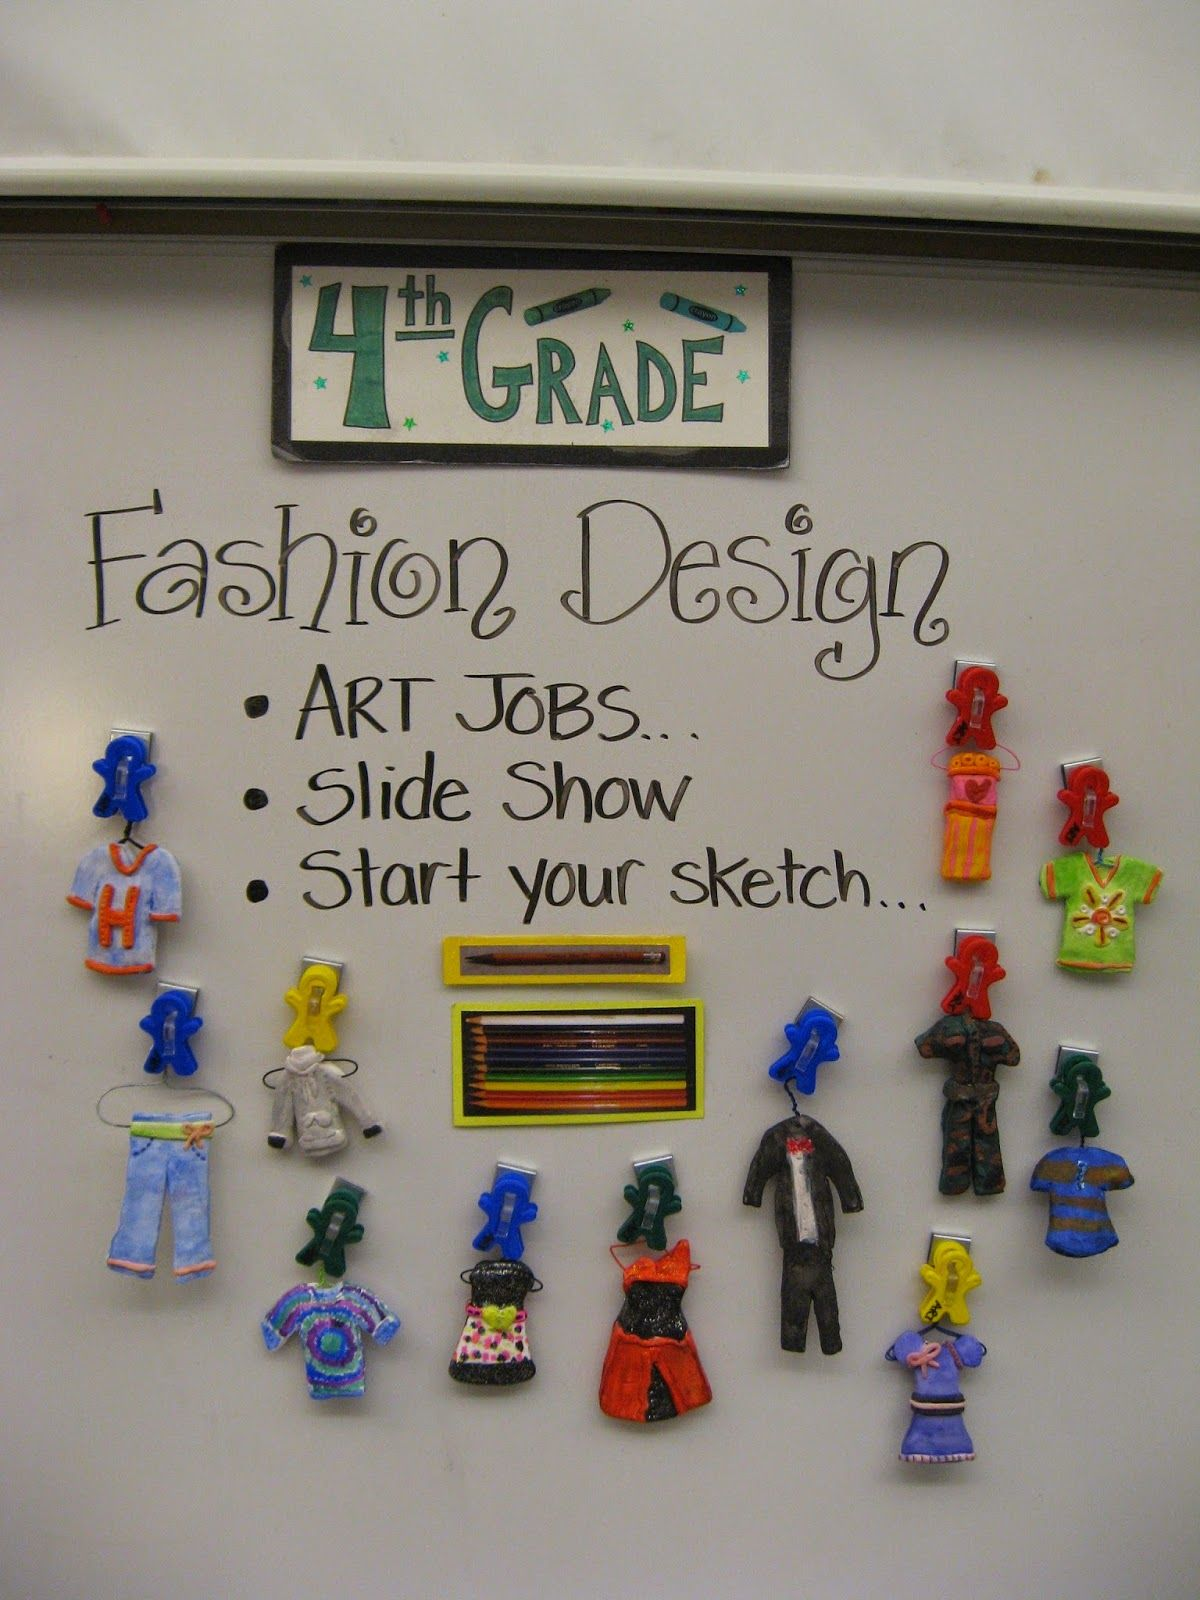 Fashion Design With Lesson Plan And Powerpoint